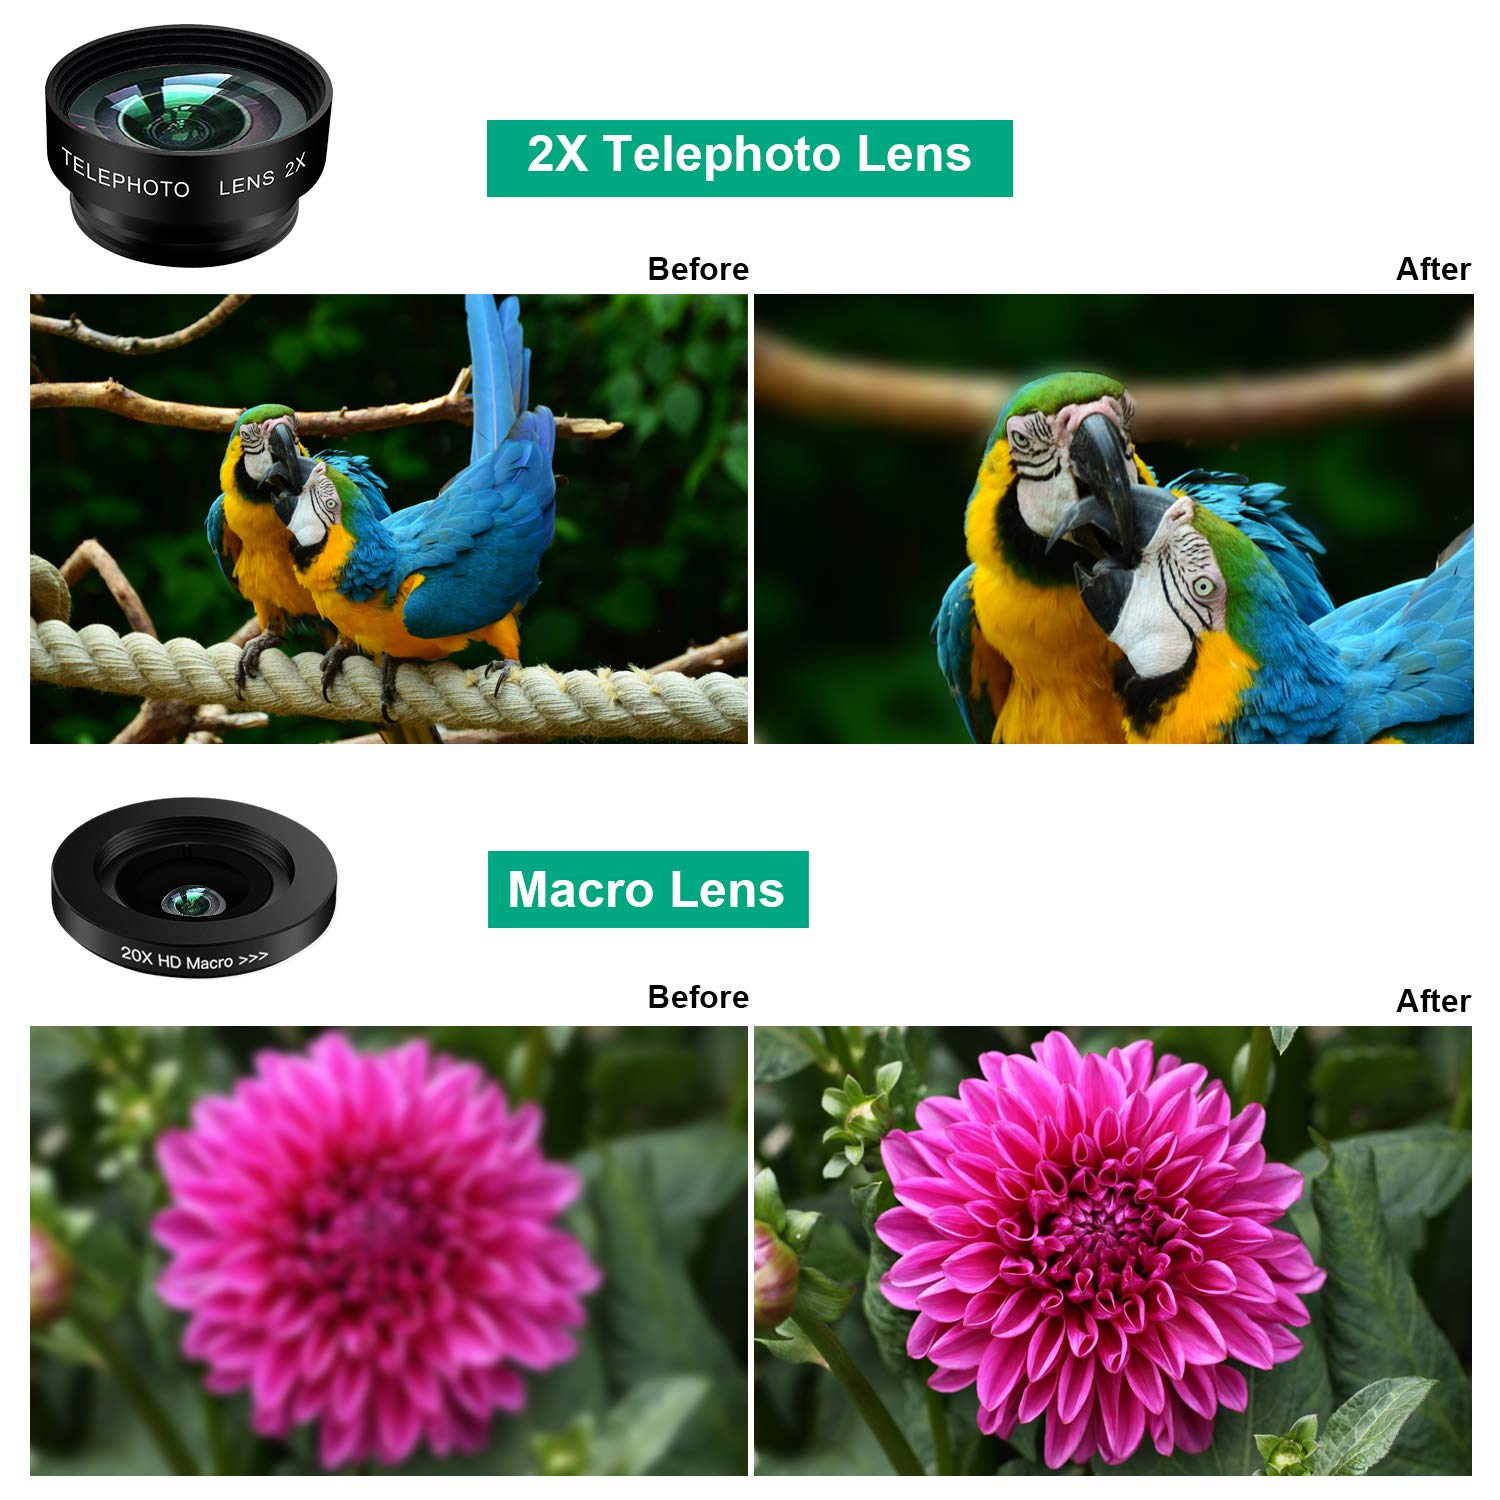 Phone Camera Lens Kit,9 in 1 Kaiess Super Wide Angle+ Macro+ Fisheye Lens +Telephoto+ CPL+Kaleidoscope+Starburst Lens for iPhone X/8/7/6s/6 Plus, Samsung,Android Smartphones(Matte Black) by Kaiess (Image #5)